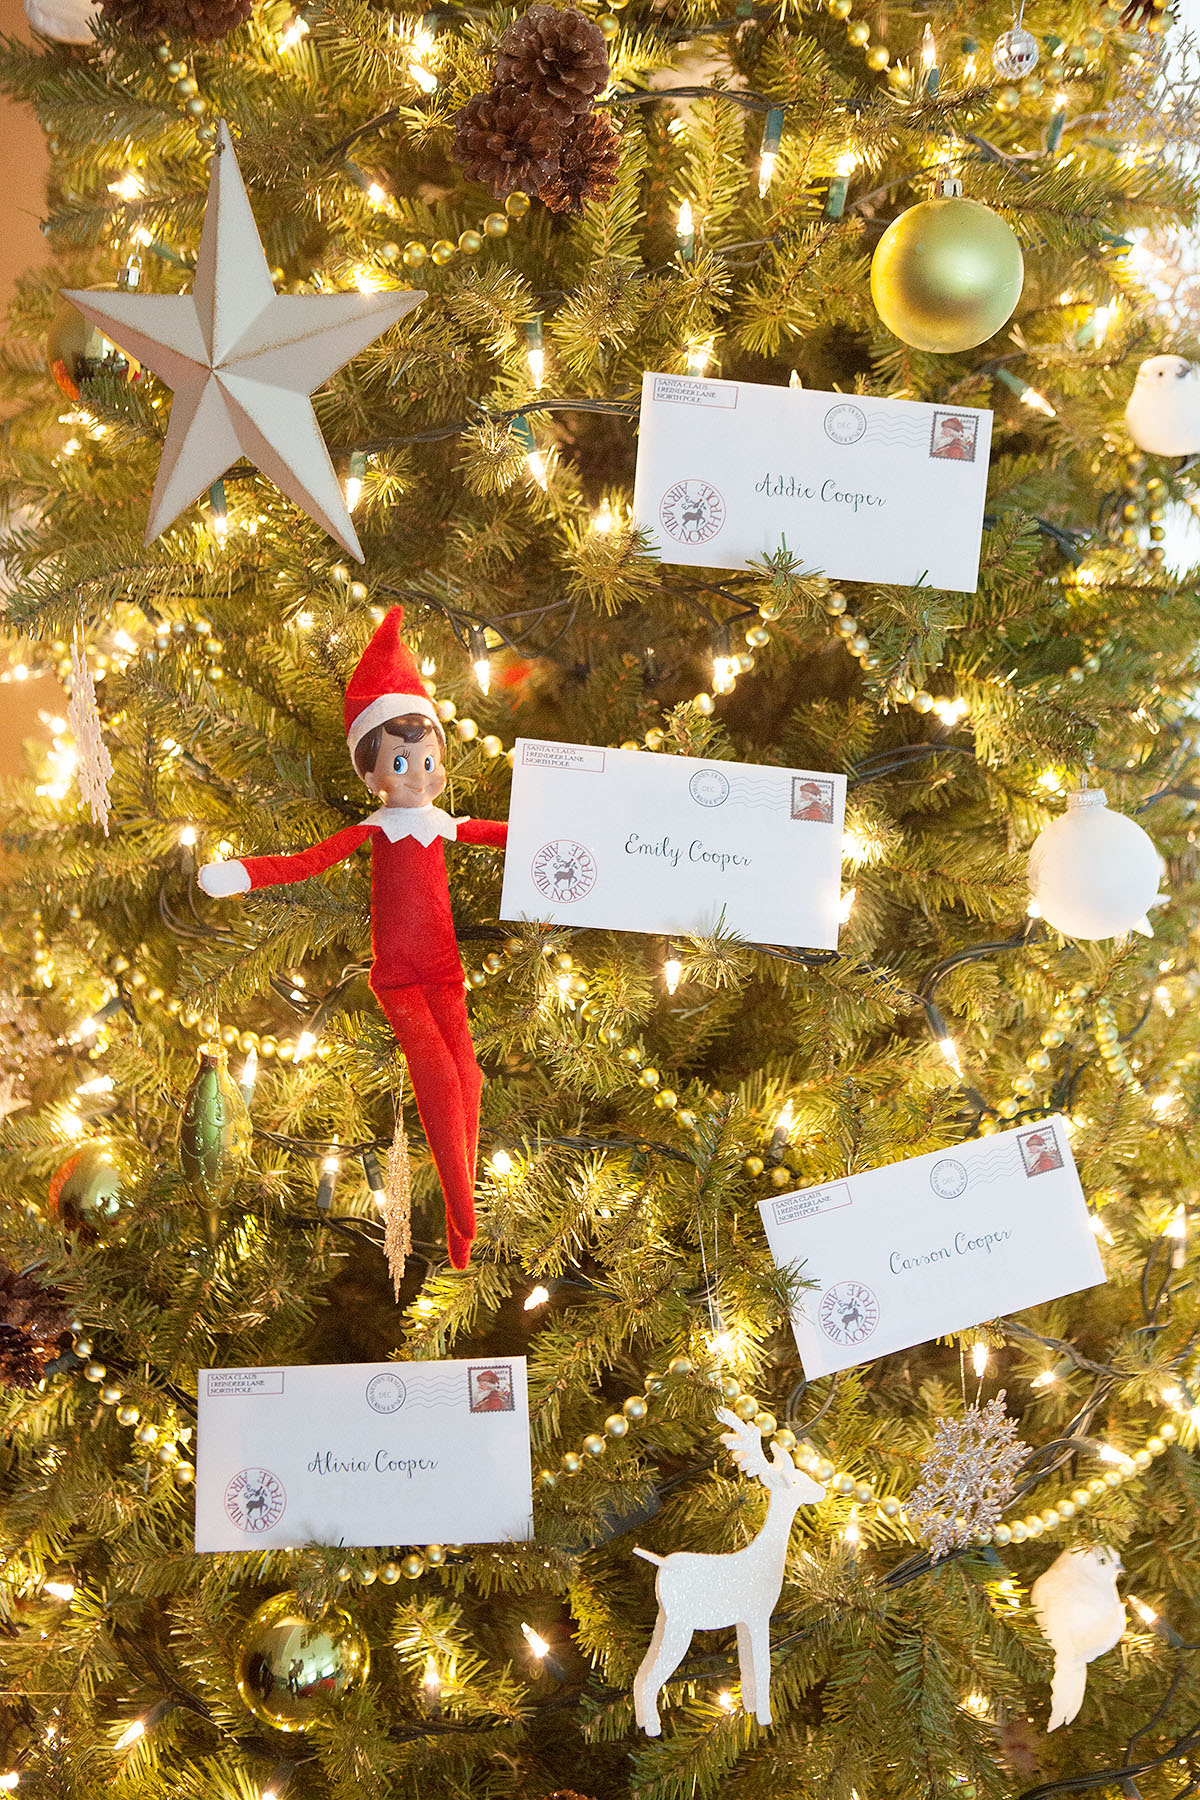 Elf delivers letters from Santa.